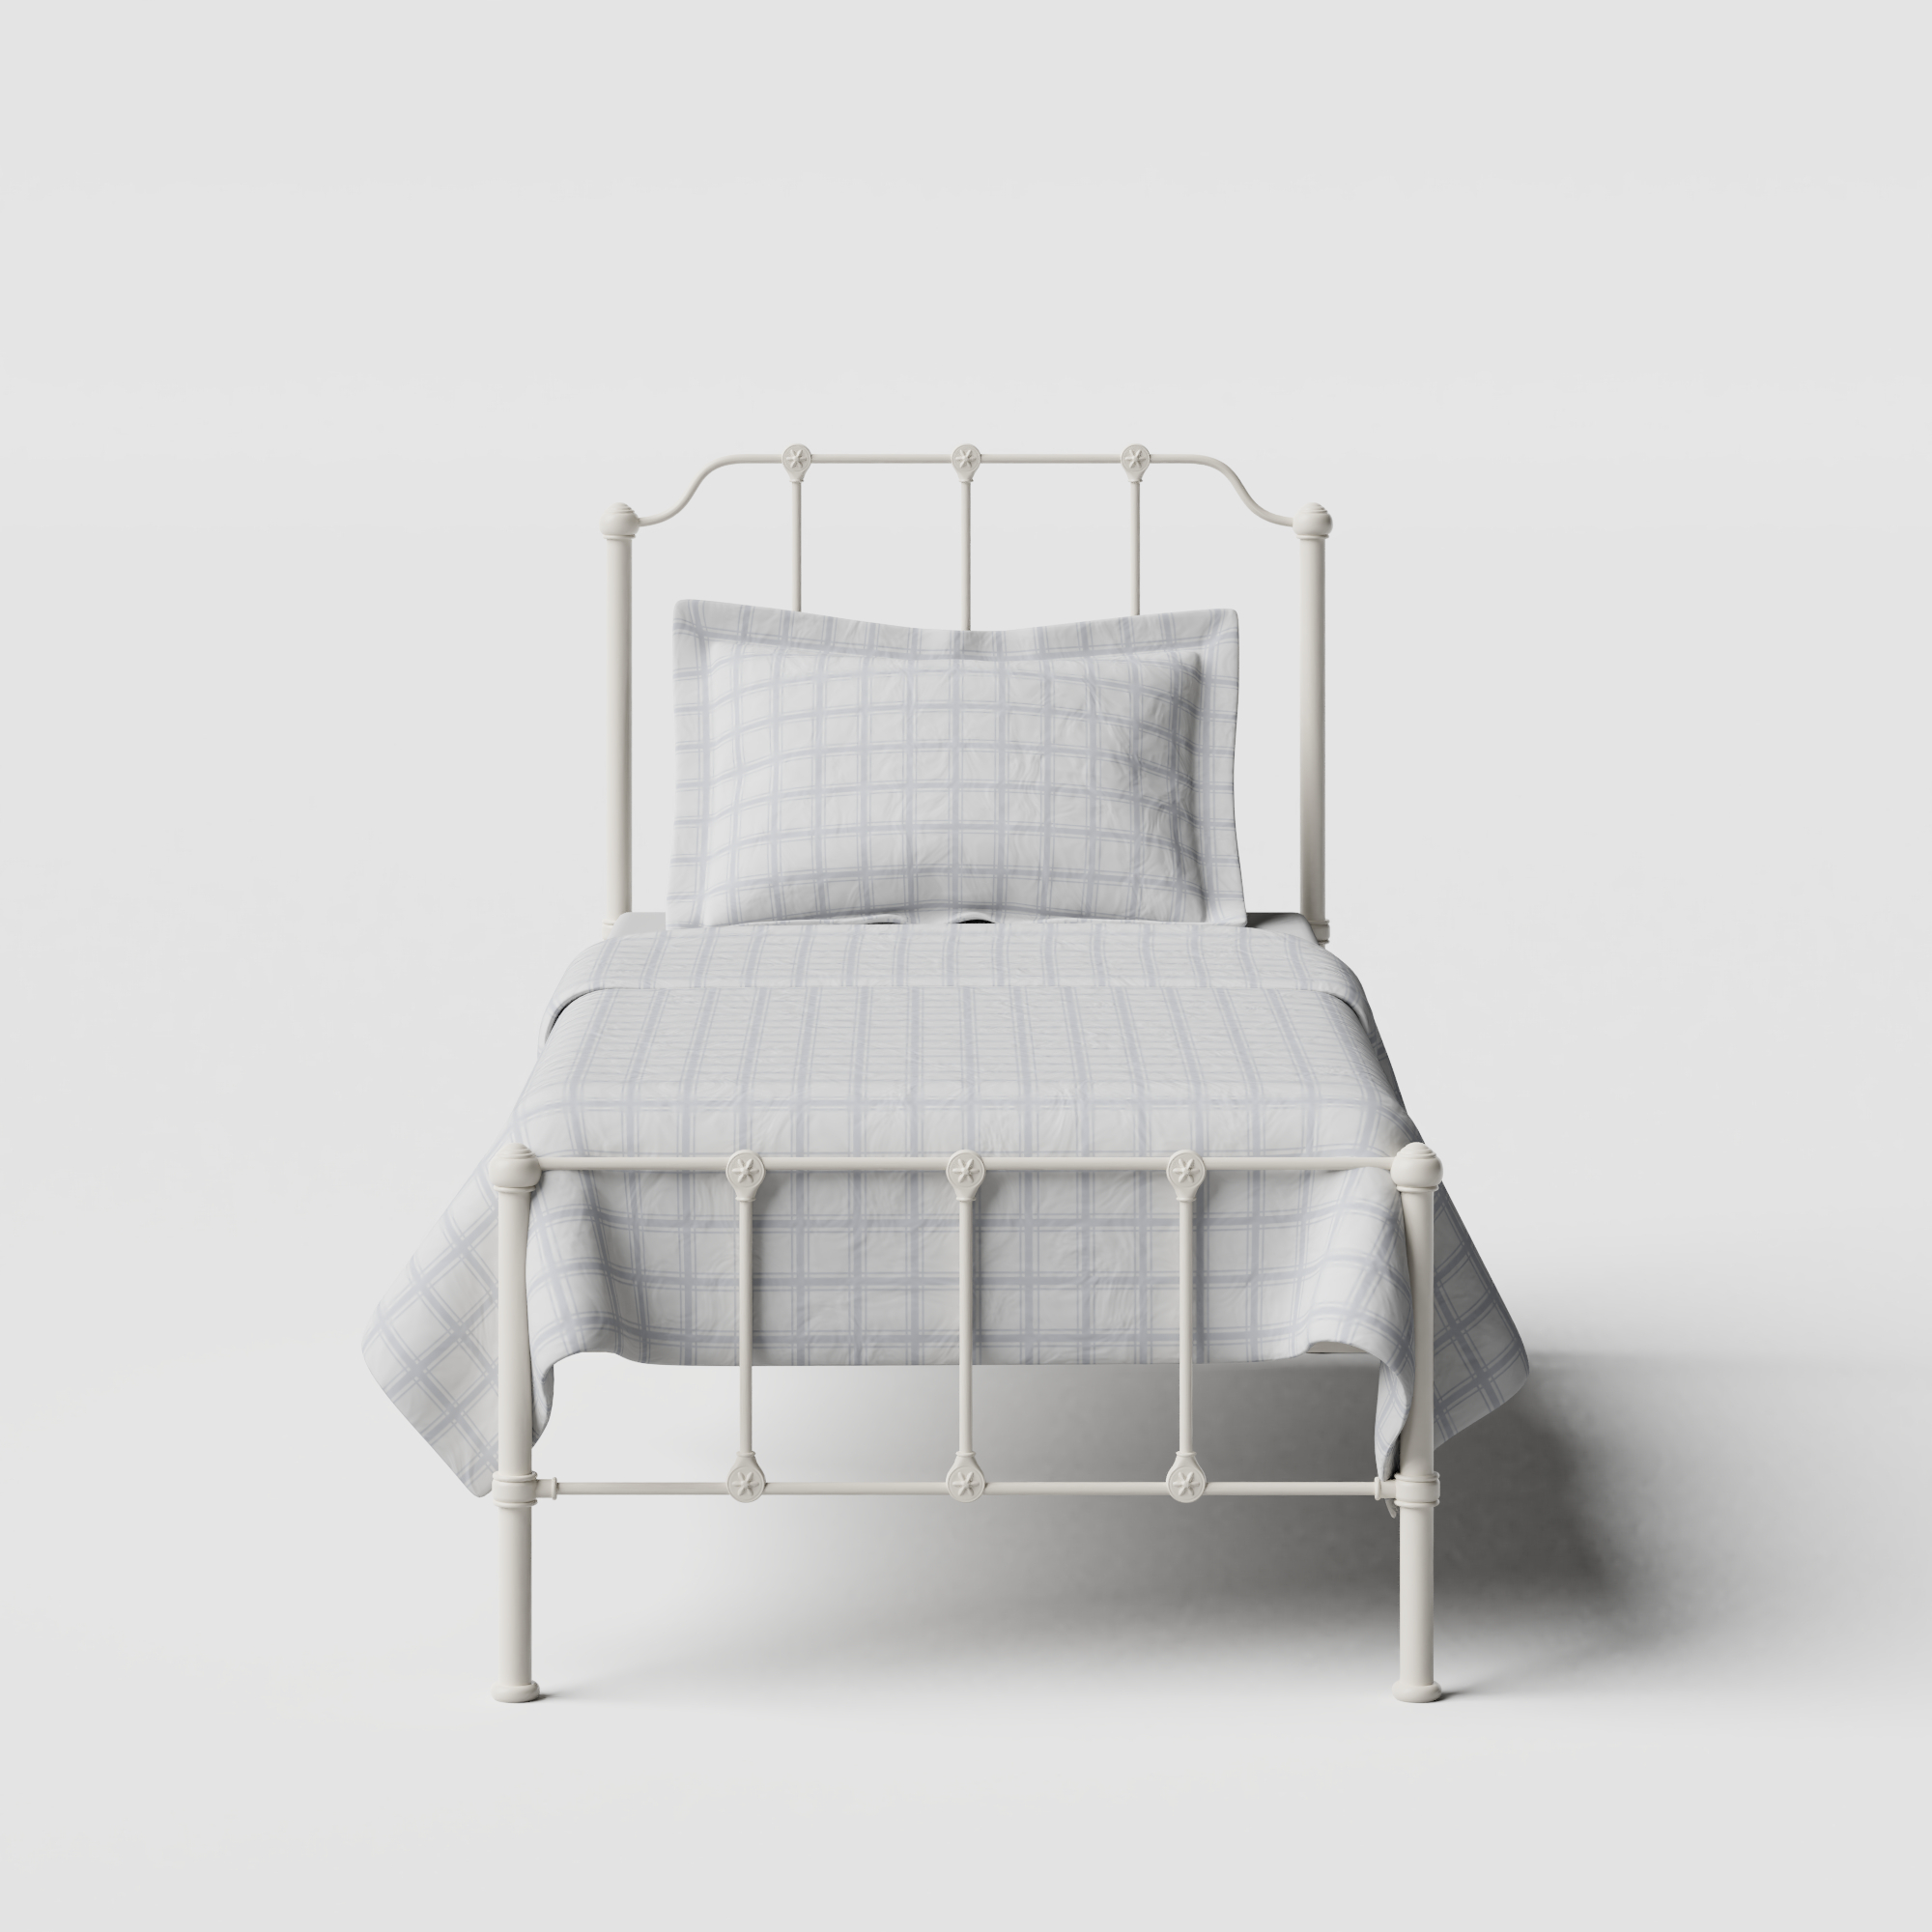 Julia iron/metal single bed in ivory